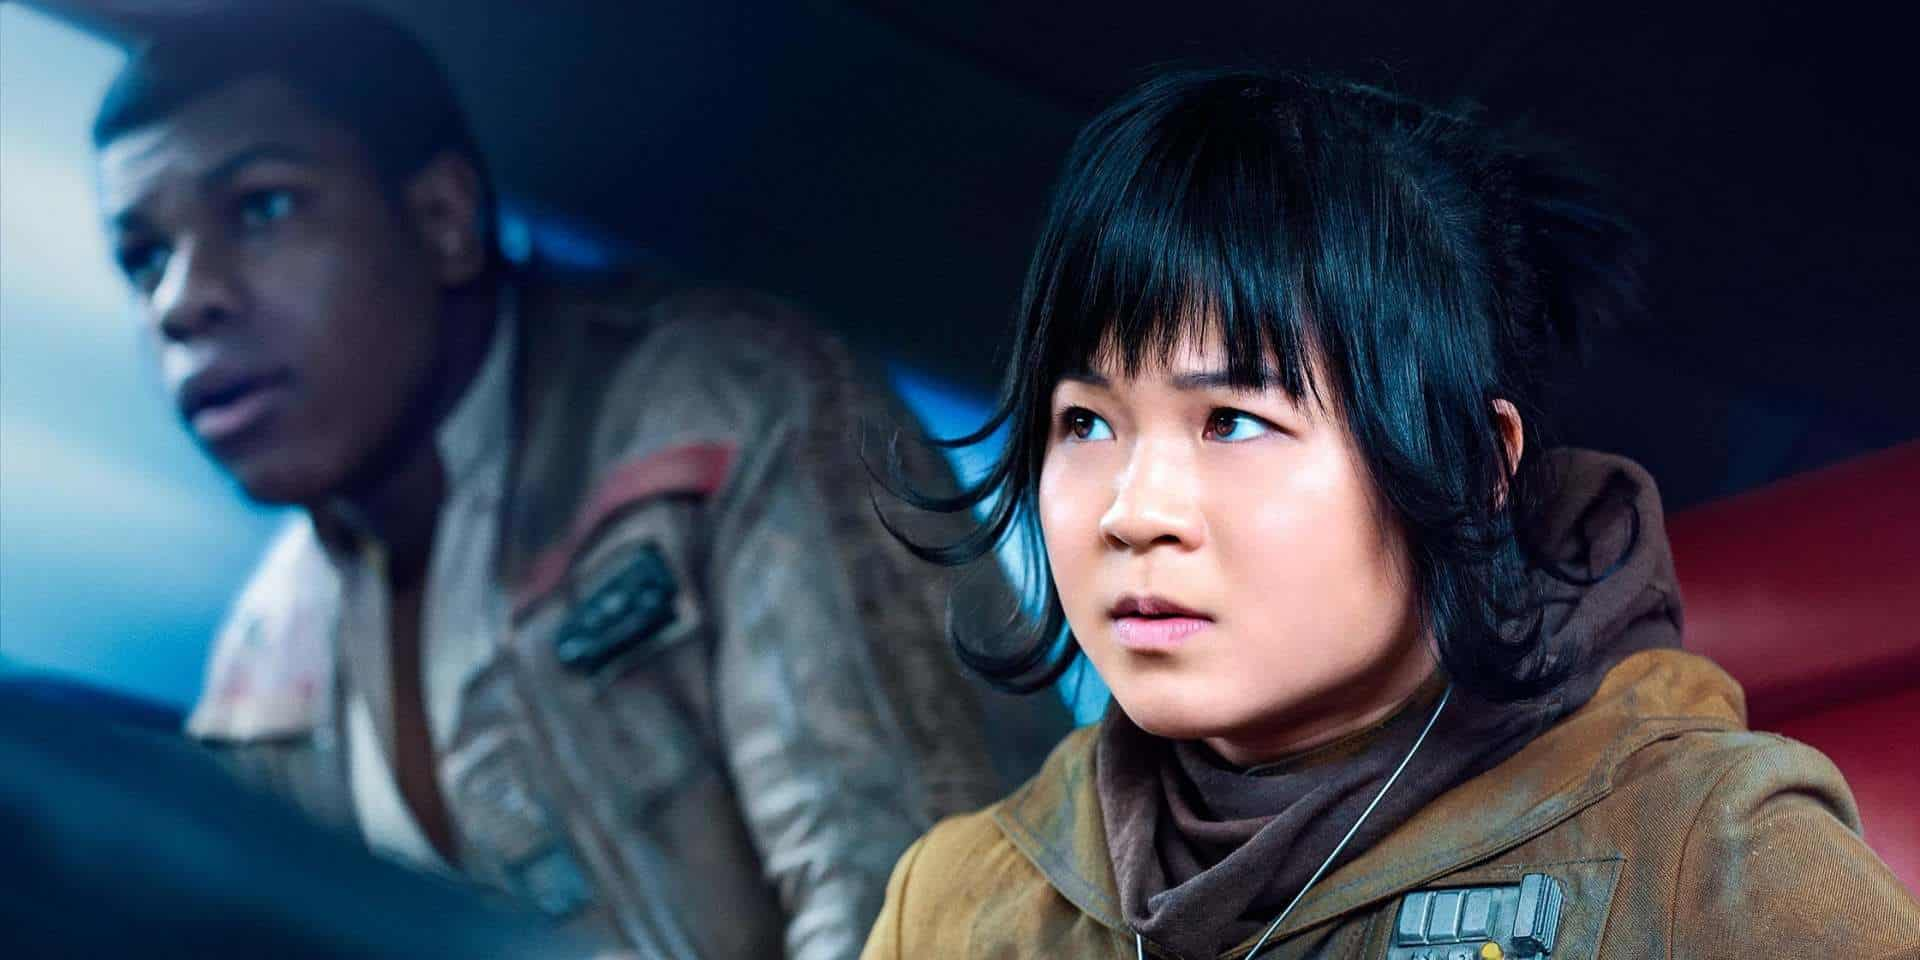 Rose TIco Star Wars Disney+ Series Rise of Skywalker Featured